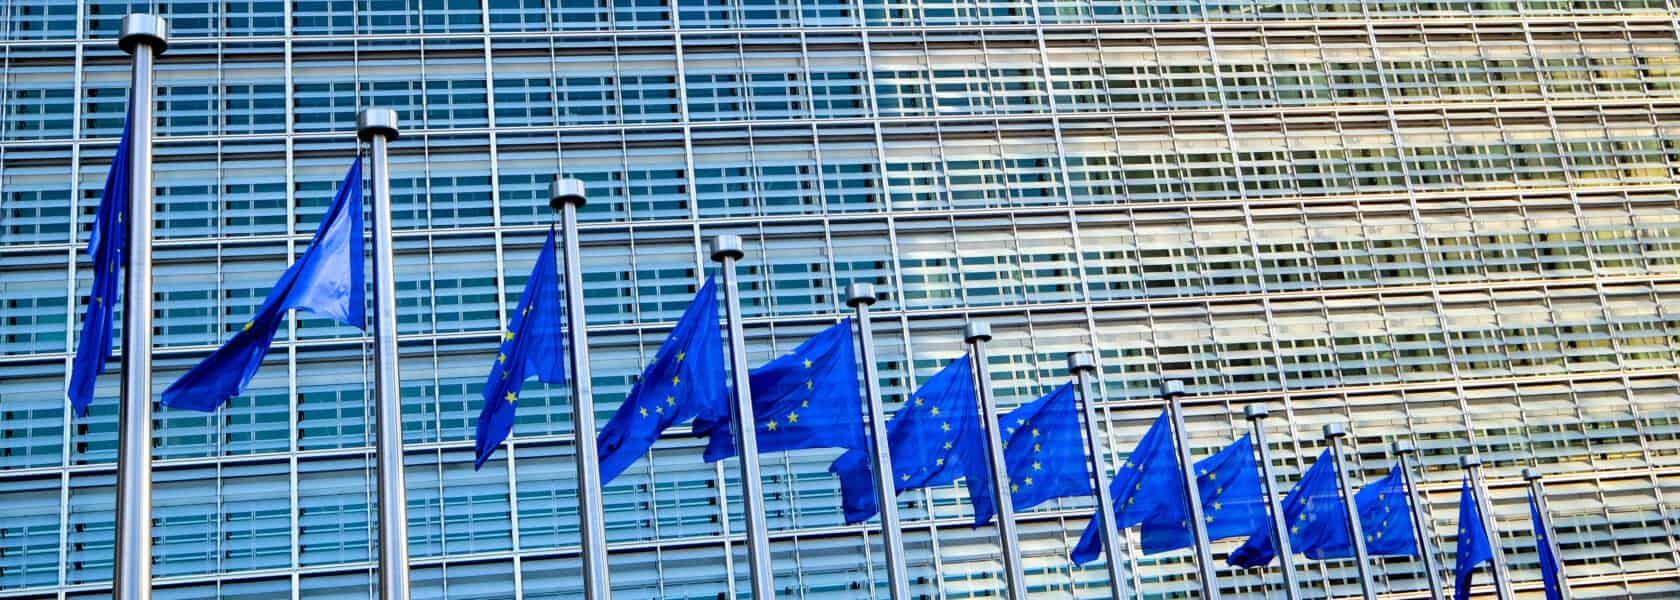 The Blue Book Traineeship With The European Commission